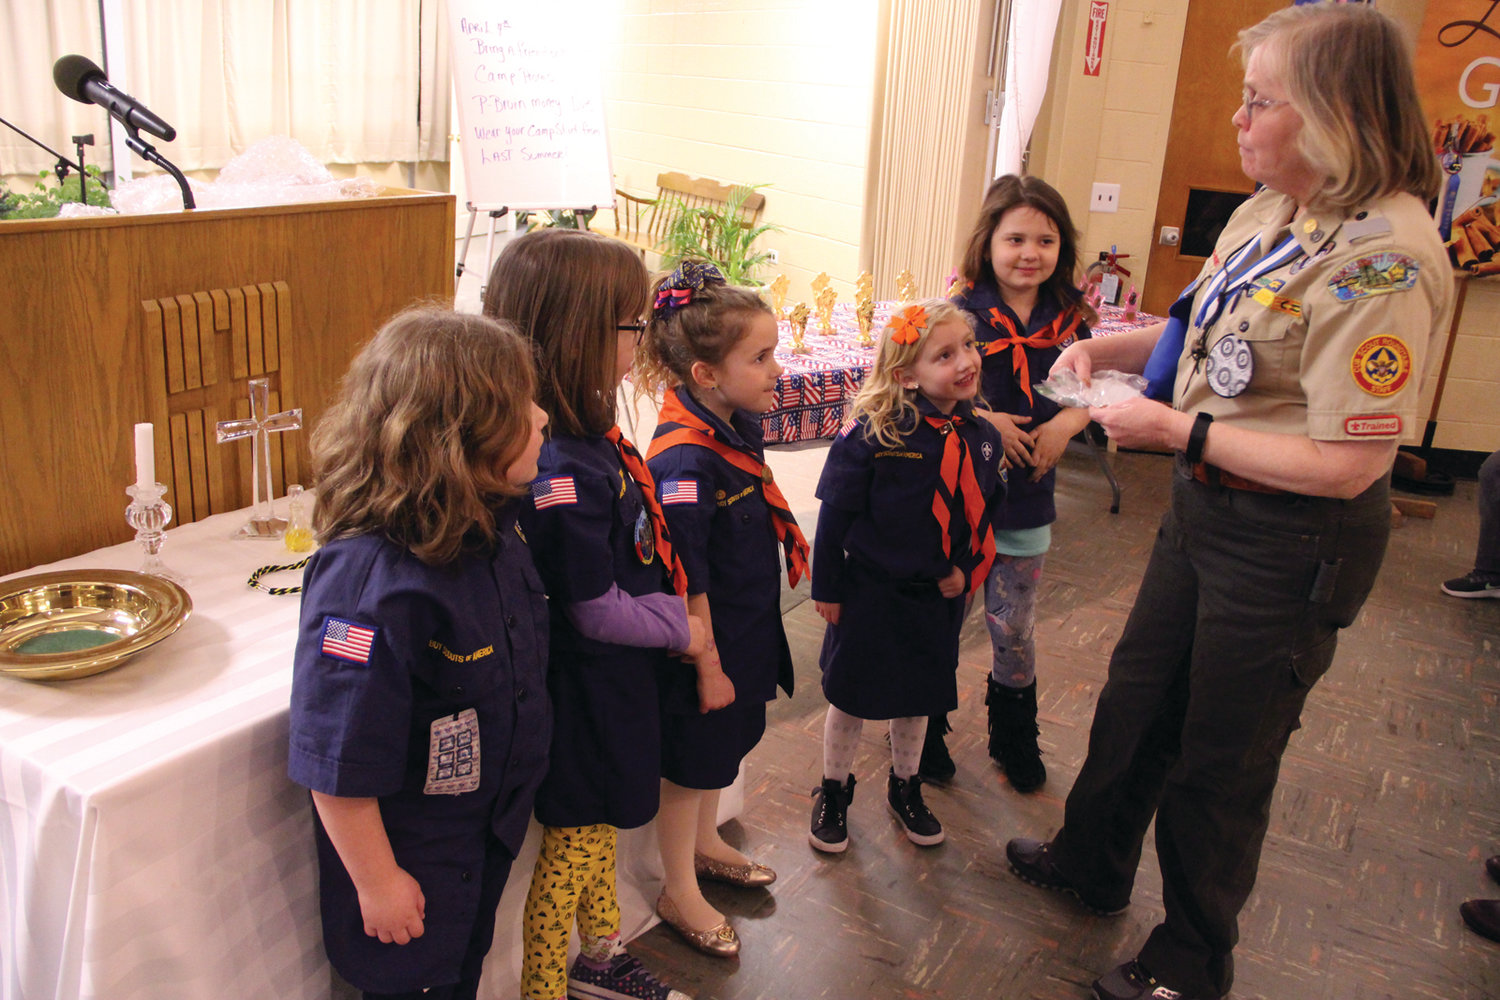 Den Leader Patty Gomm awards badges to members of her Cub Scouts pack.